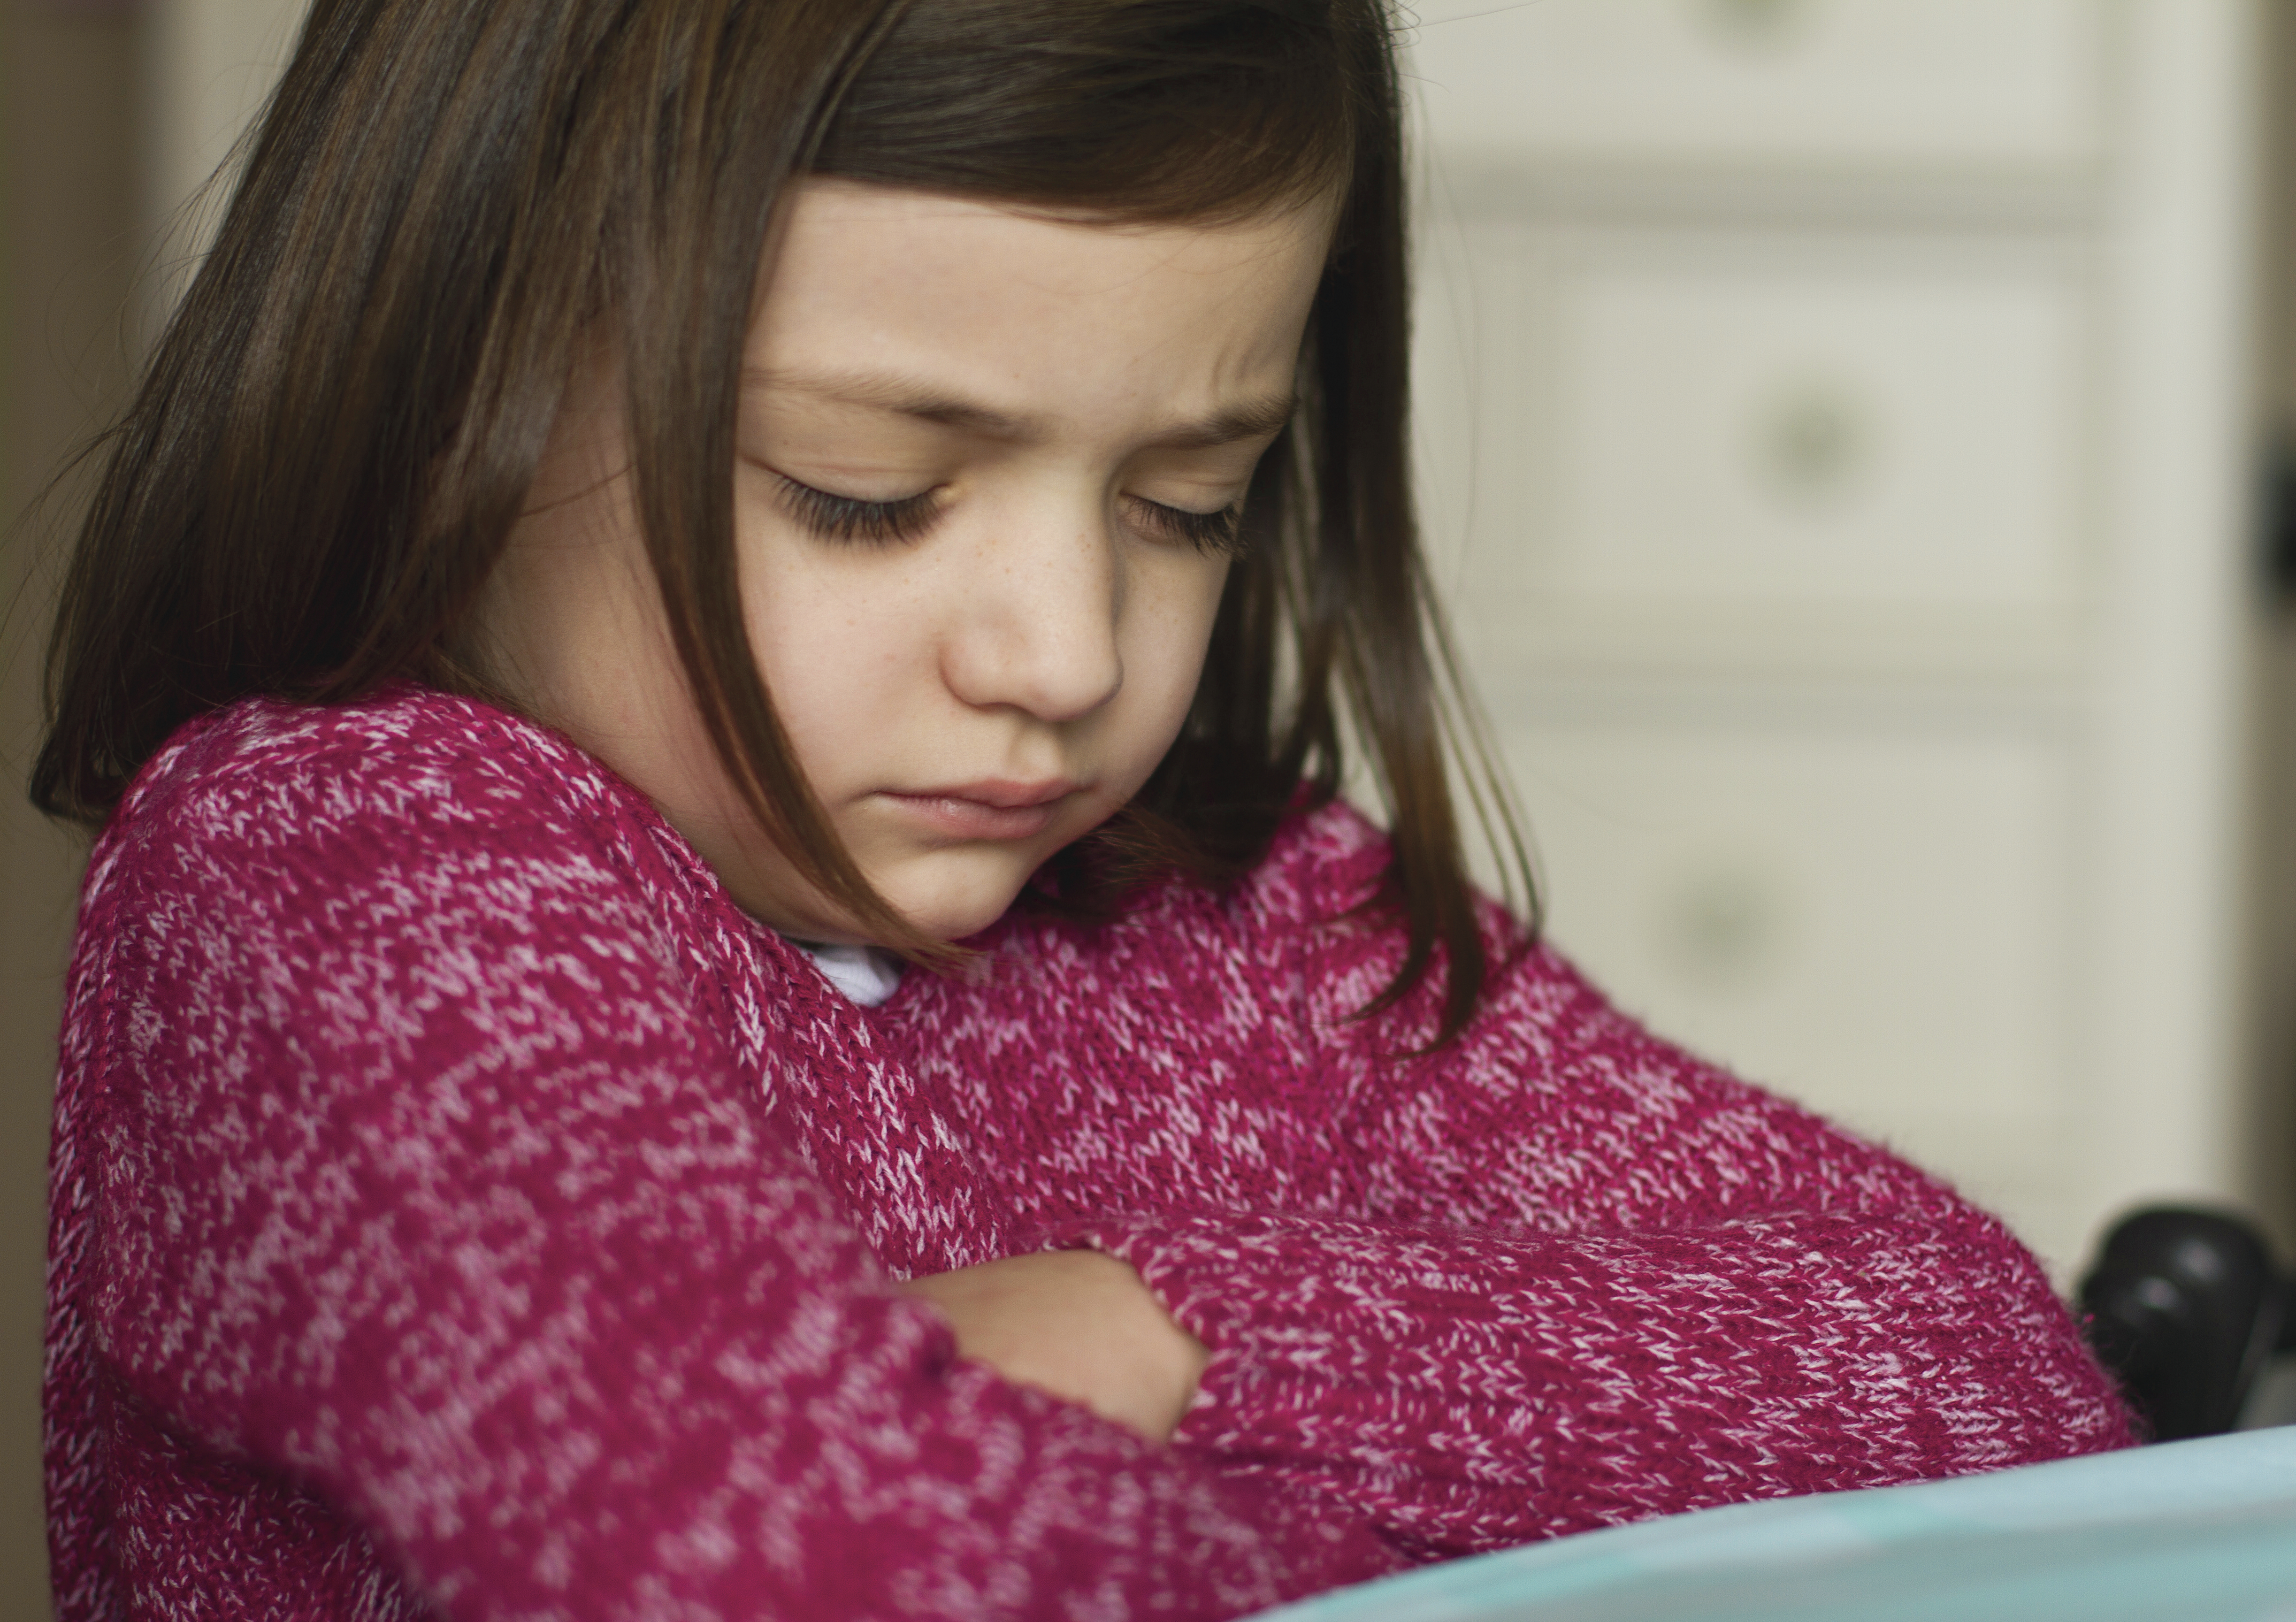 A young girl in a pink sweater folds her arms and prays.